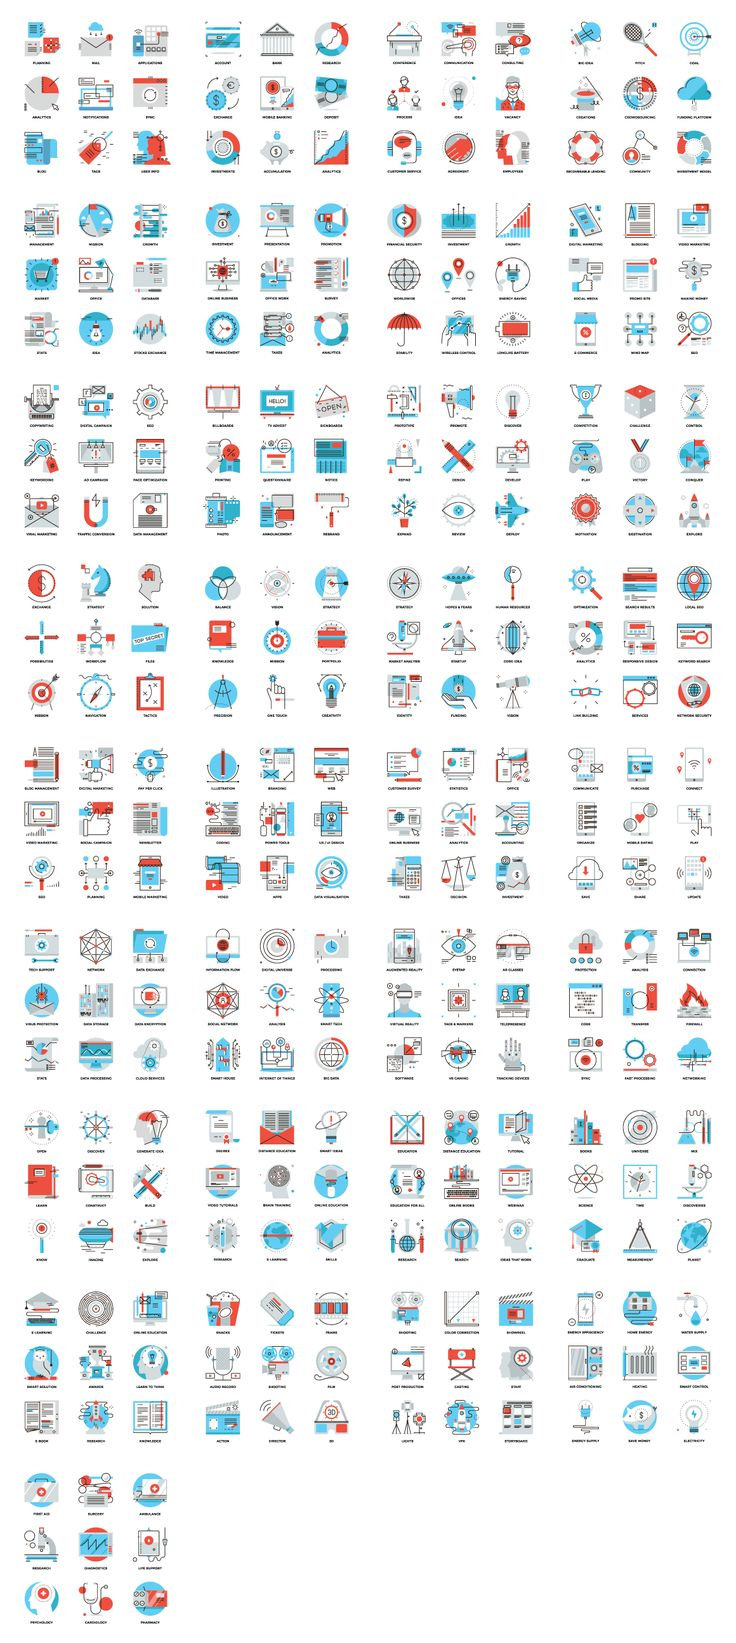 Wireless icon line iconset iconsmind - The Monoflat Icons Collection A Set Of 297 Flat Icons From Diverse Topics The Monoflat Icons Are Based On Current Design Trends Using Both Flat Graphics